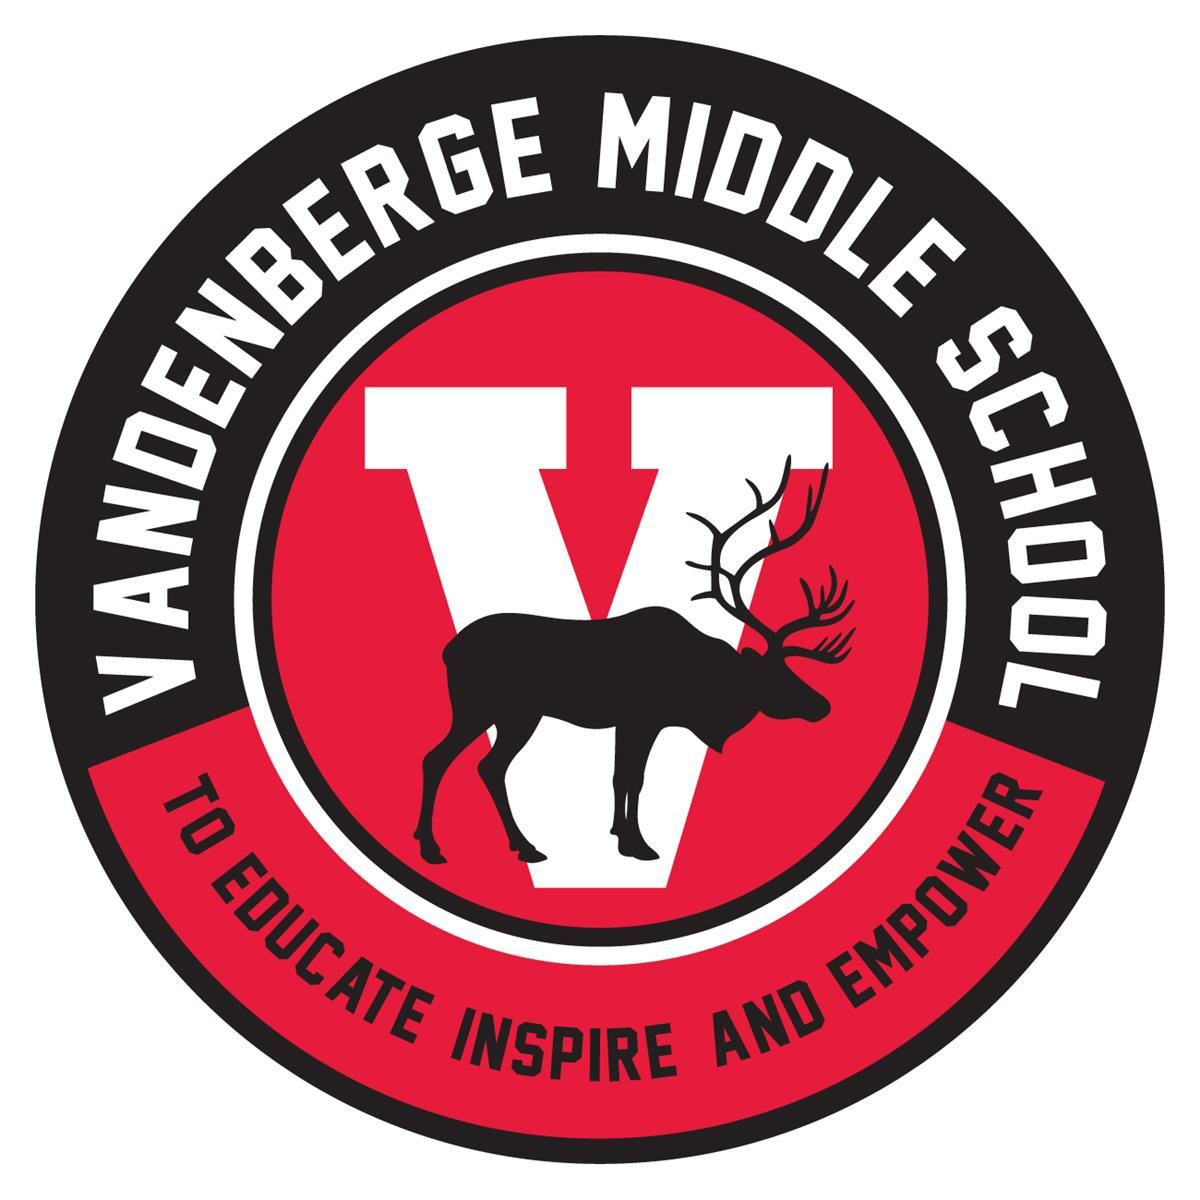 There's a place for YOU at VandenBerge Middle School